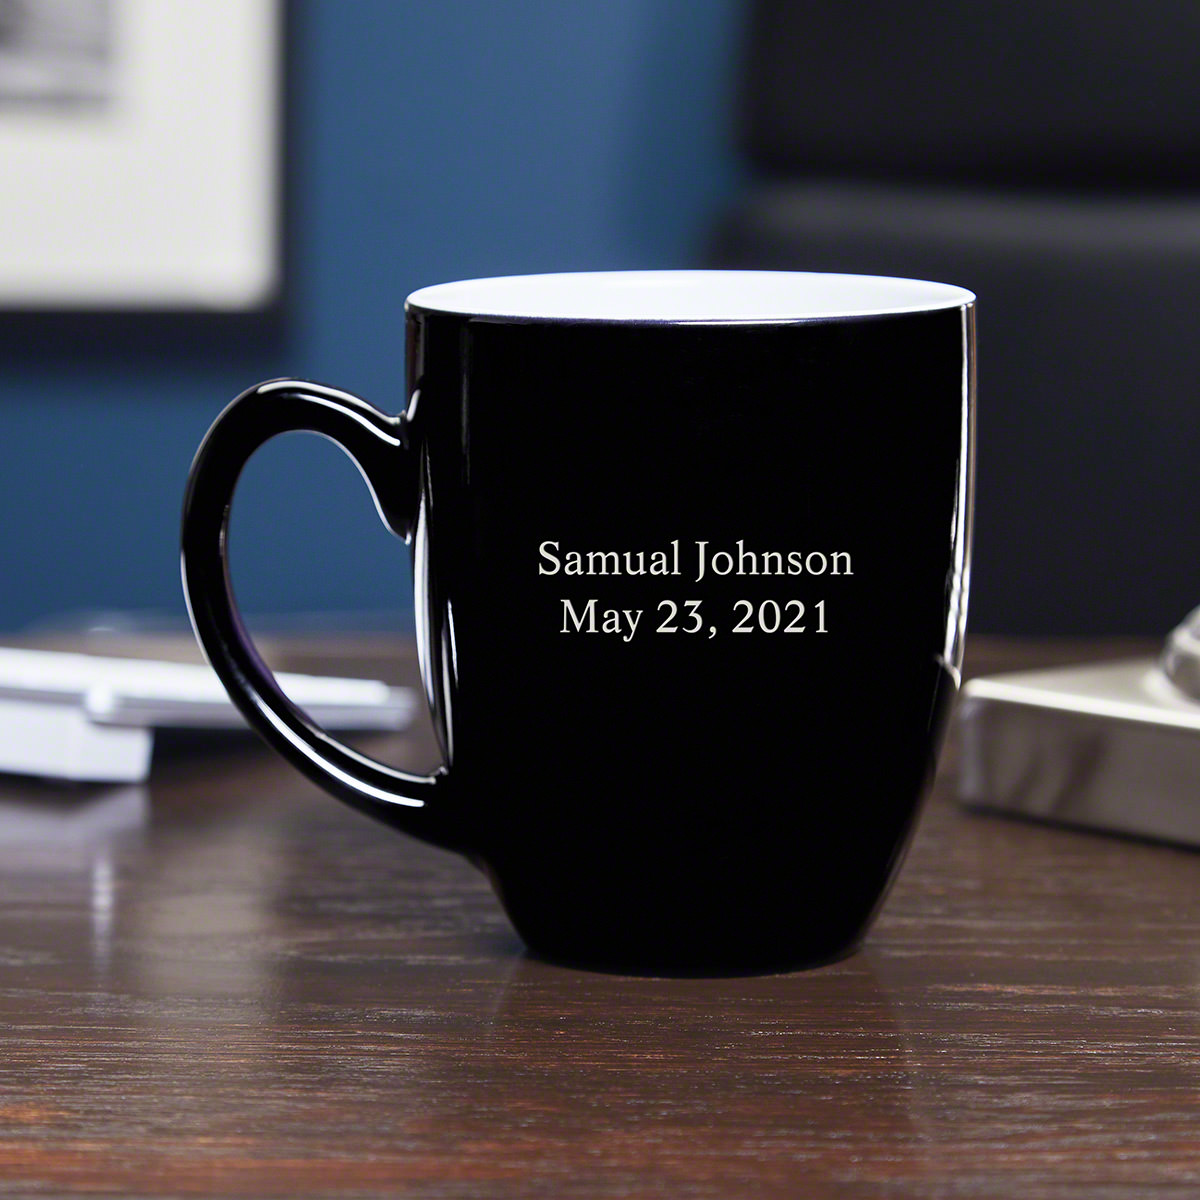 Even if your desk is full of mugs and tumblers, a true coffee lover knows you can never be too ready for that morning cup. Our personalized coffee mug features a smooth black glaze, custom engraved with up to two lines of custom text. You can add a name, #mug